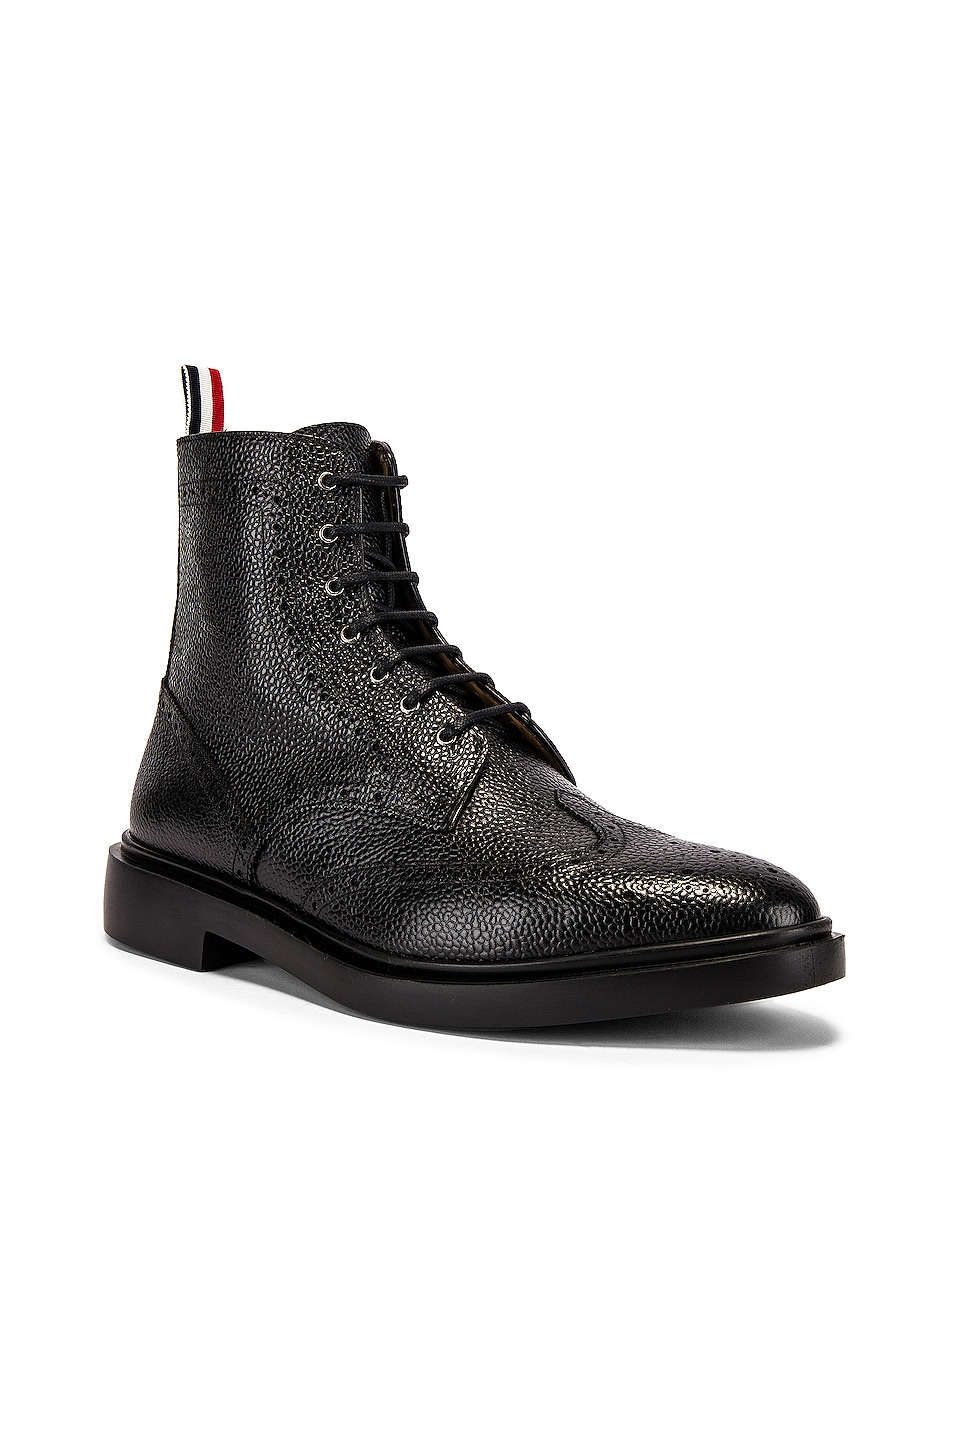 Image 1 of Thom Browne Classic Wingtip Boot in Black